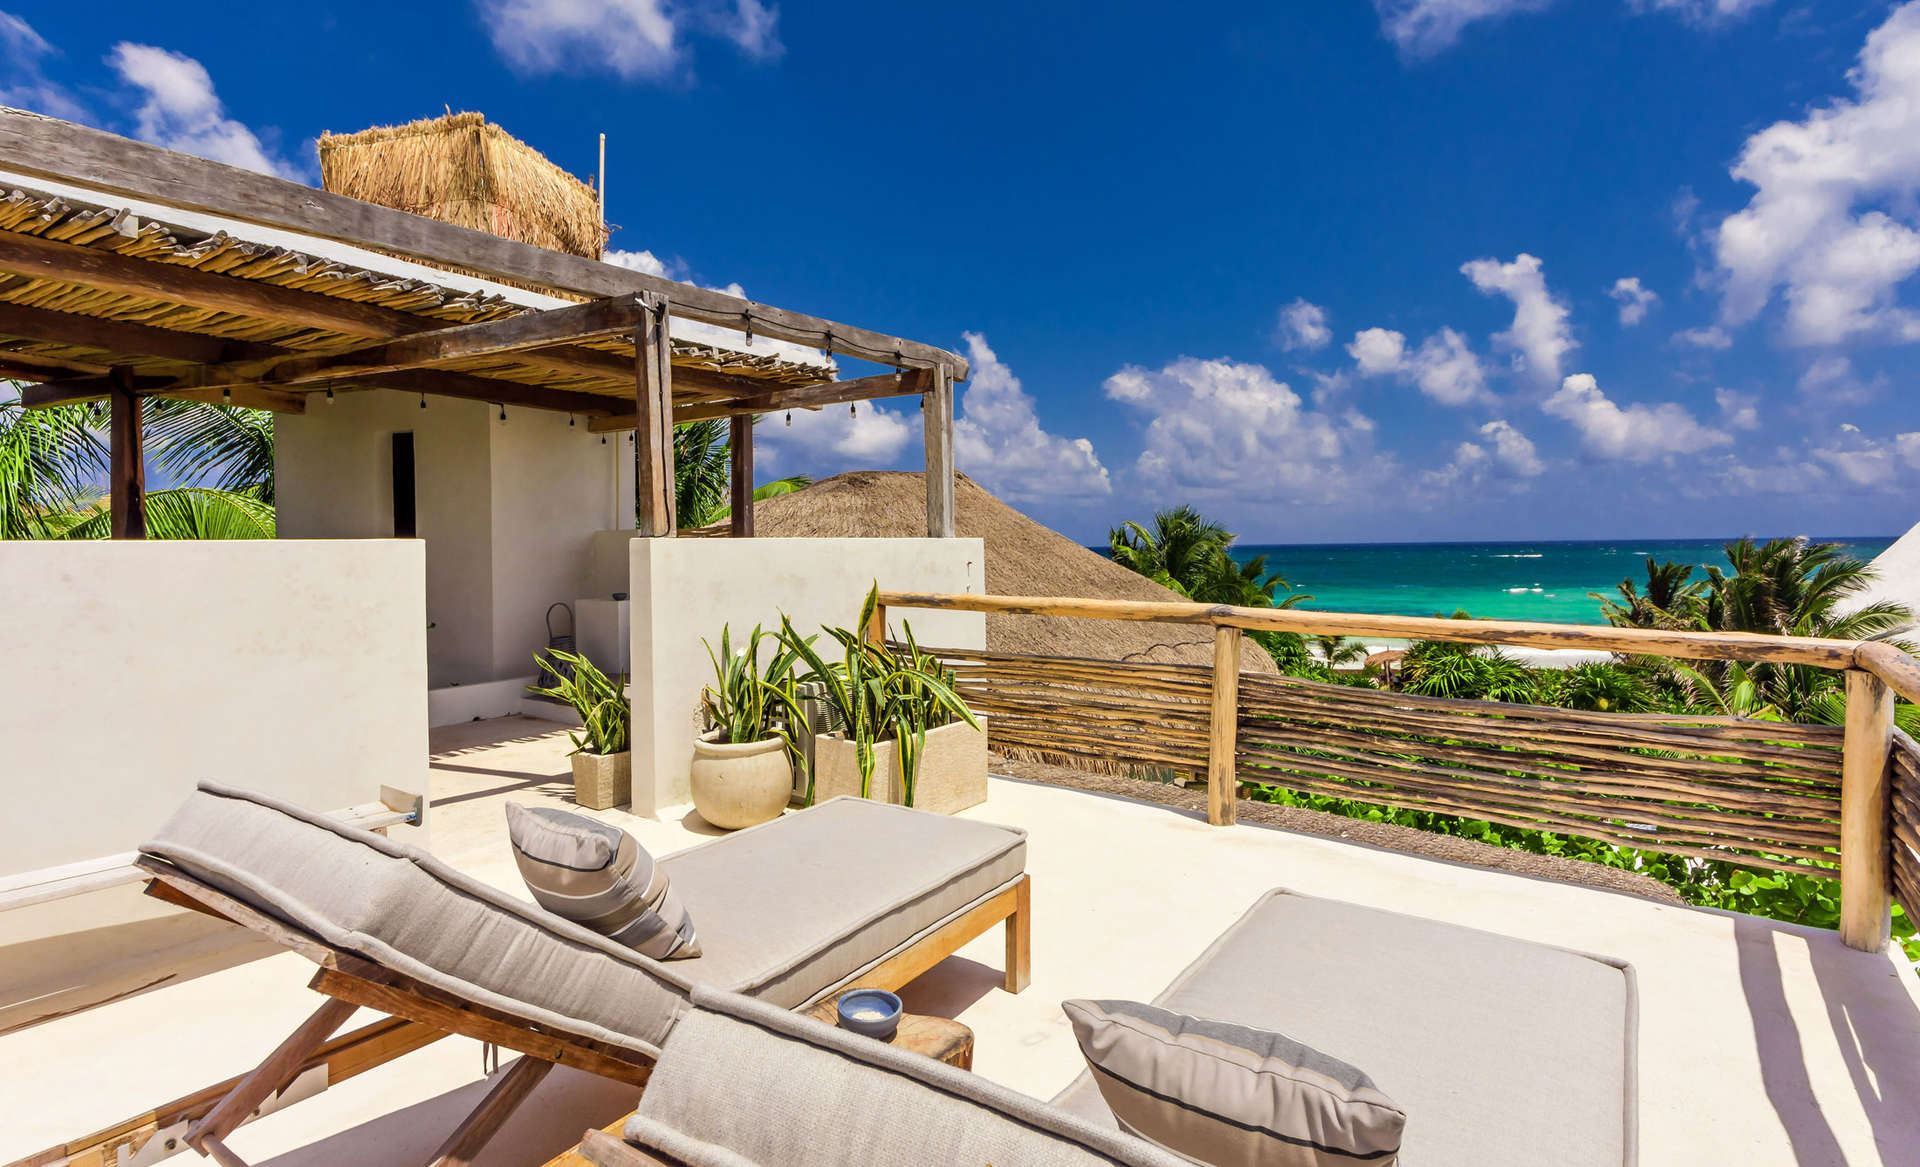 Luxury vacation rentals mexico - Riviera maya - Tulum - Tulum beach zone - Casa Chakte - Image 1/27